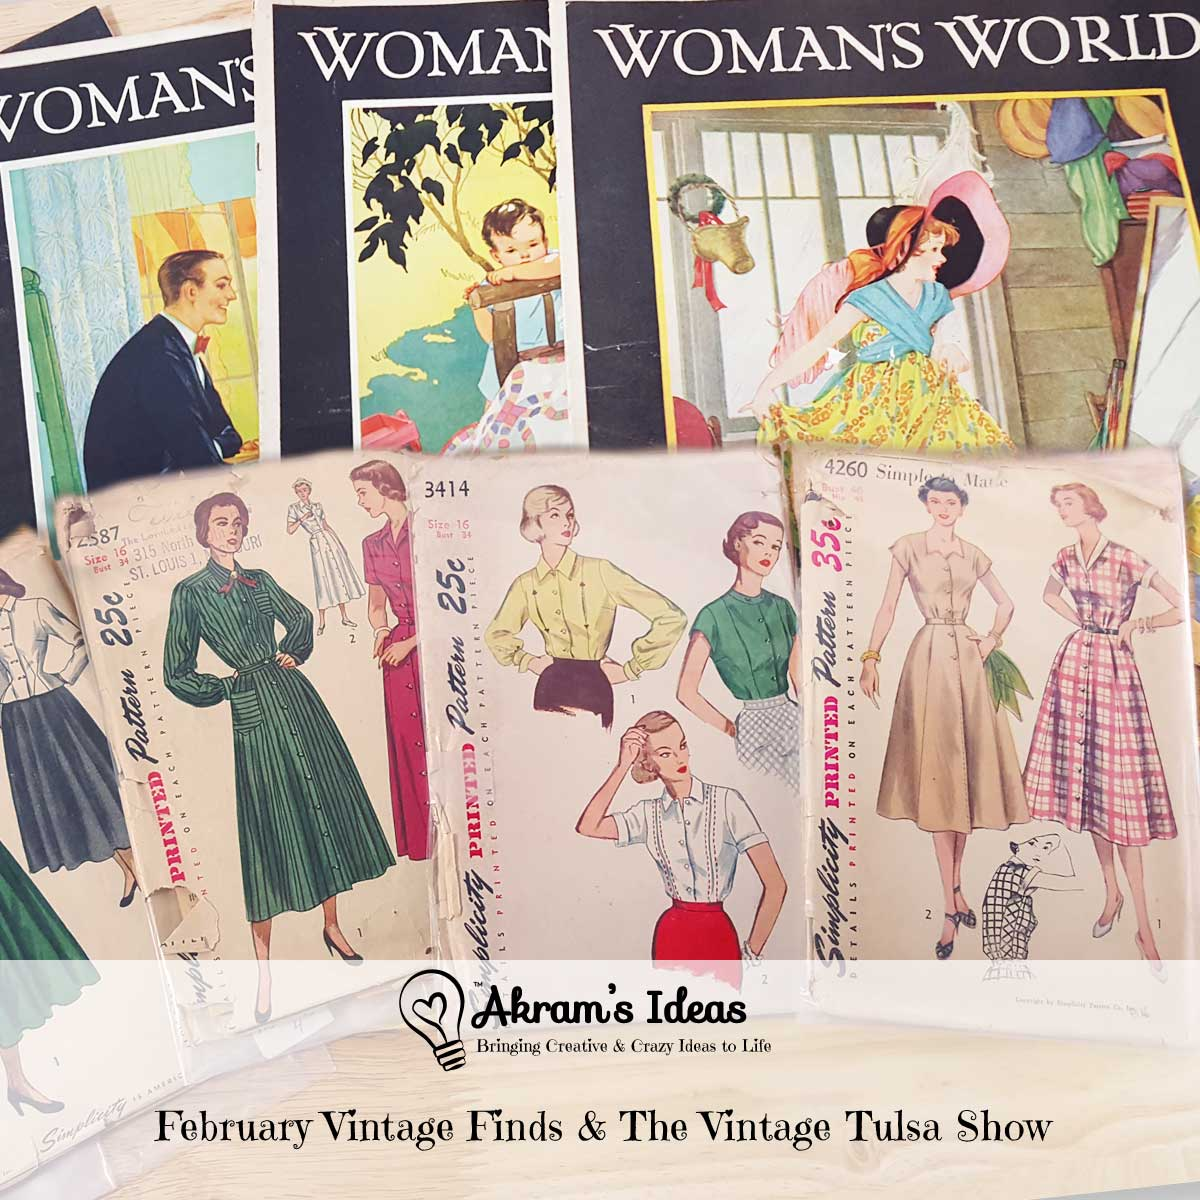 Akram's Ideas: February Vintage Finds & The Vintage Tulsa Show